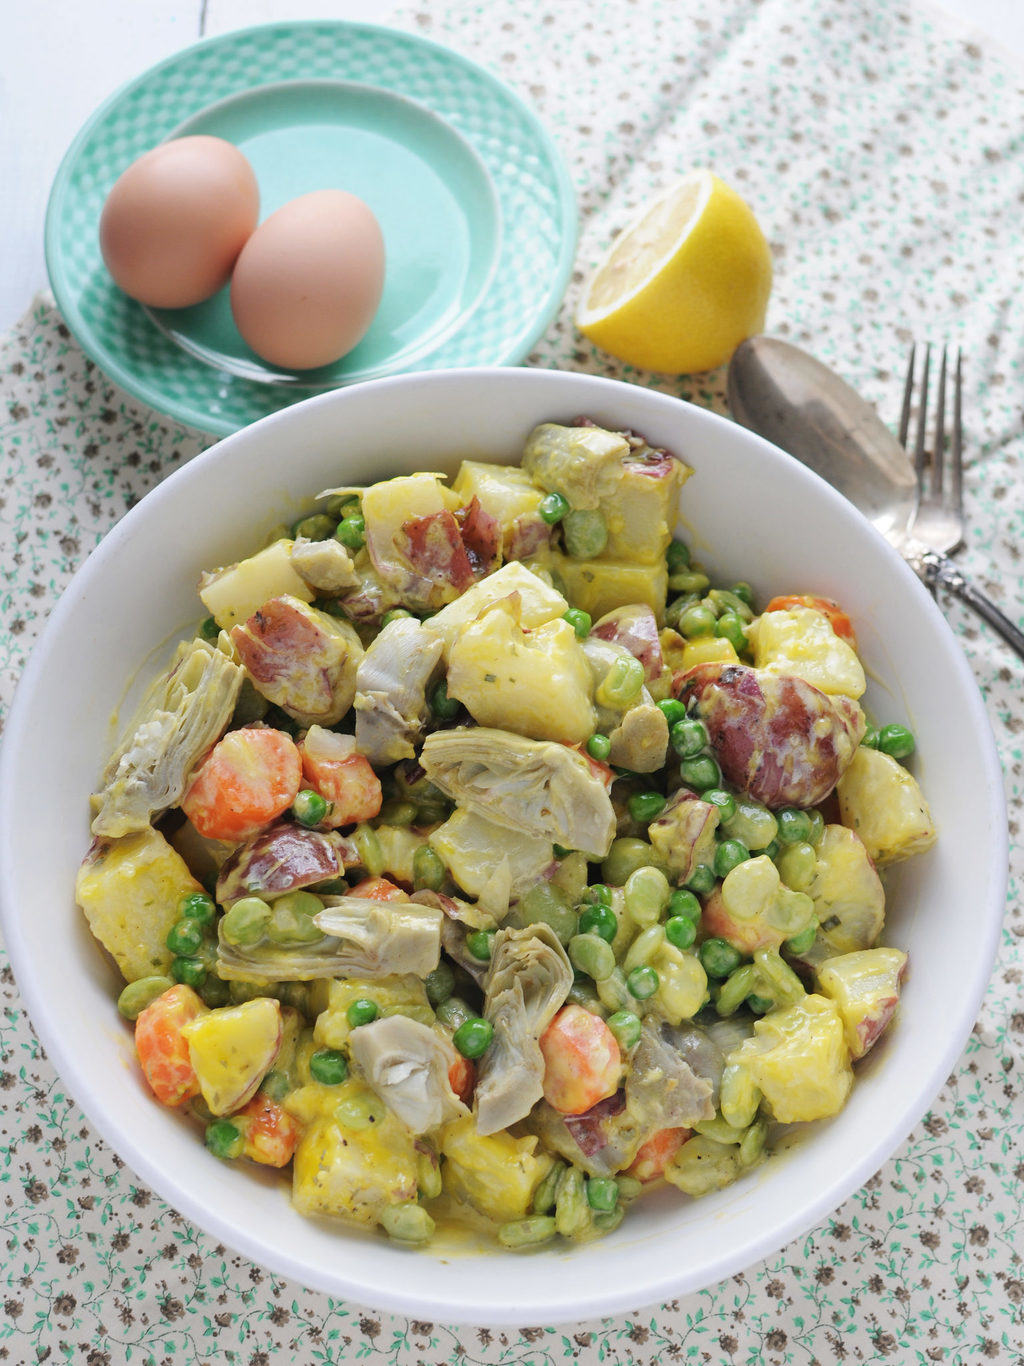 Spring Potato Salad With Homemade Mayo